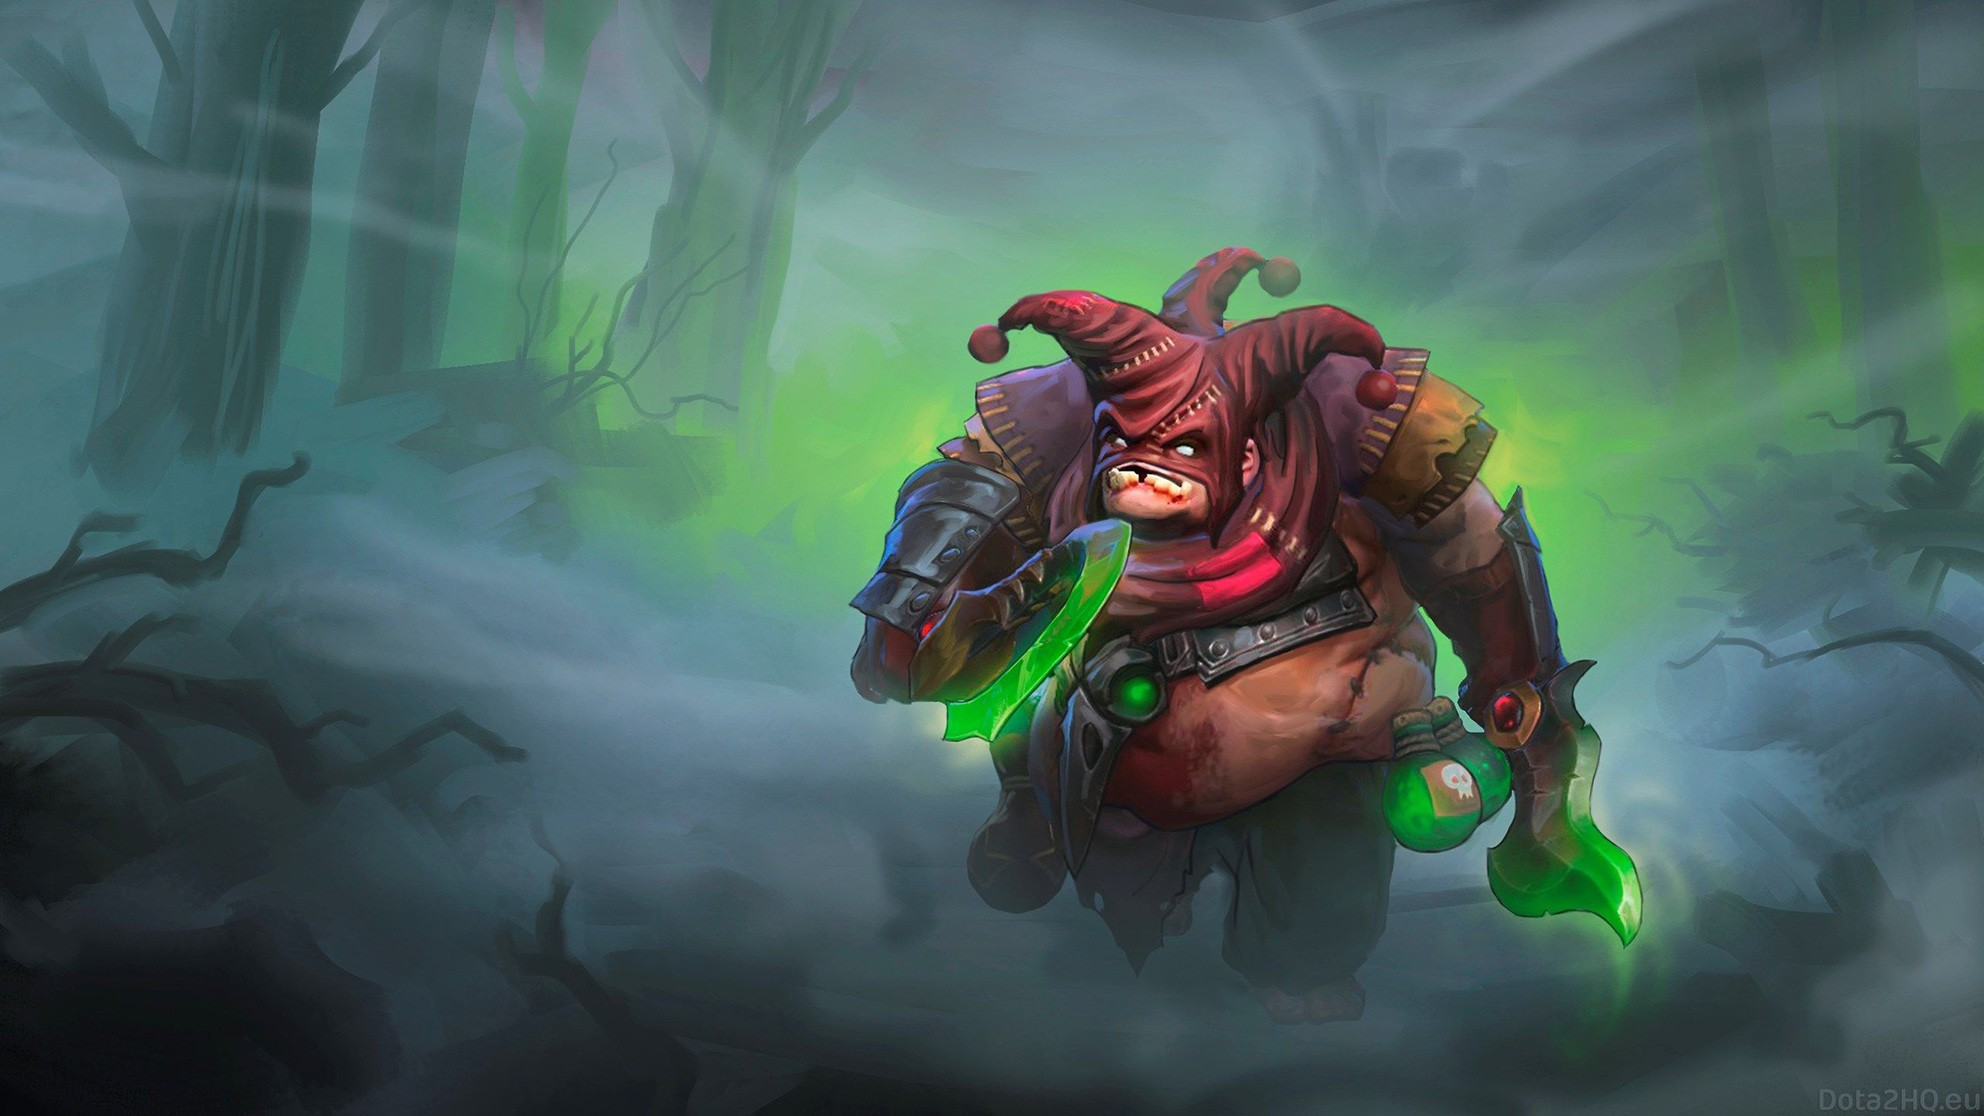 Valve announced the date of 7.20 patch for Dota 2